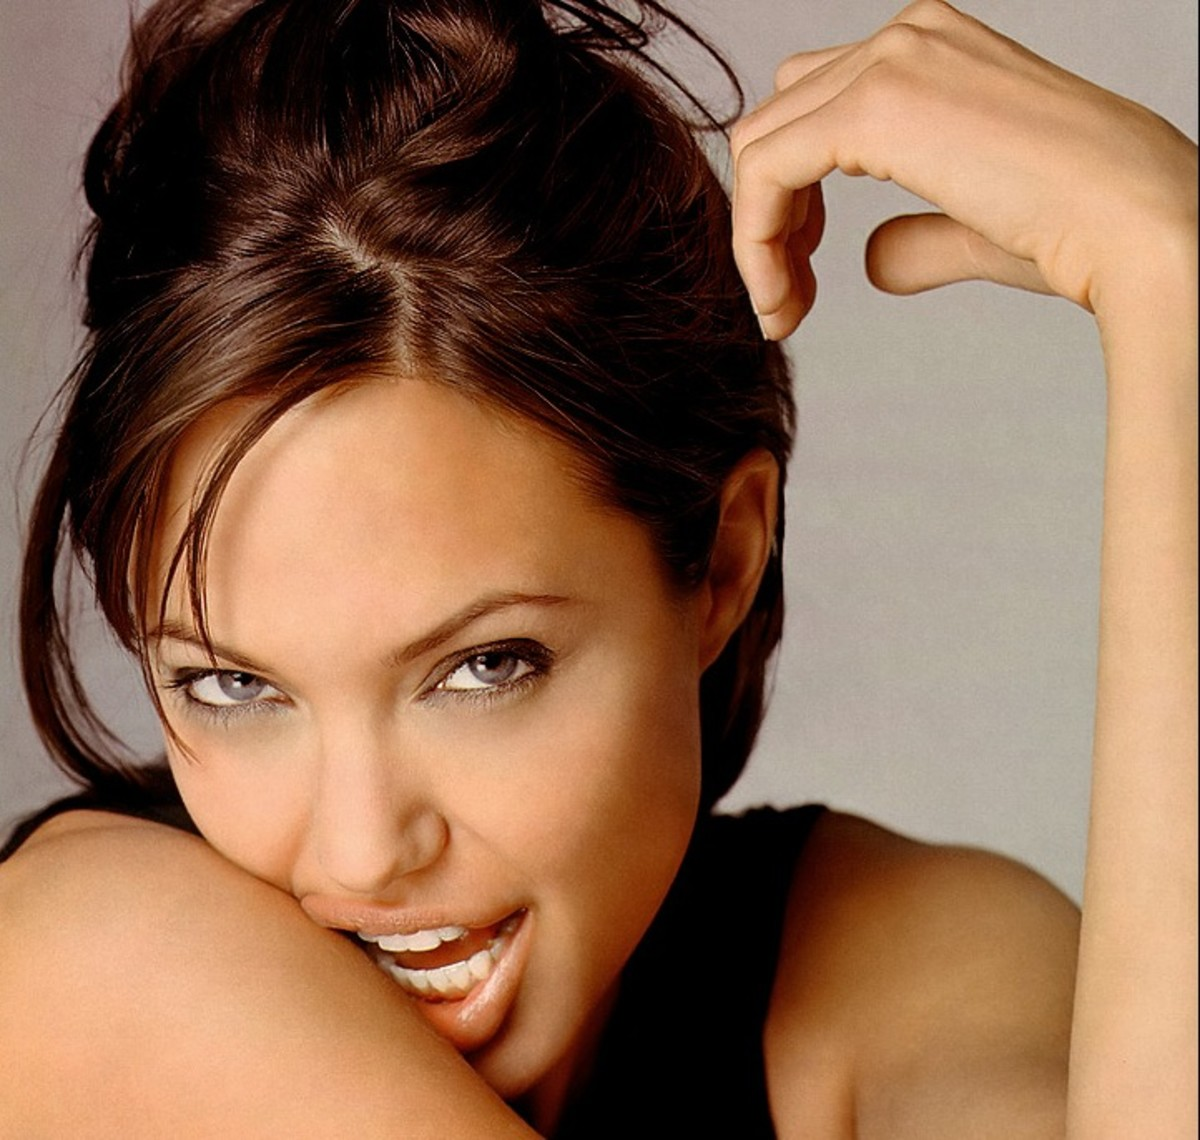 Angelina Jolie Photos Hot angelina jolie hot or not? | hubpages